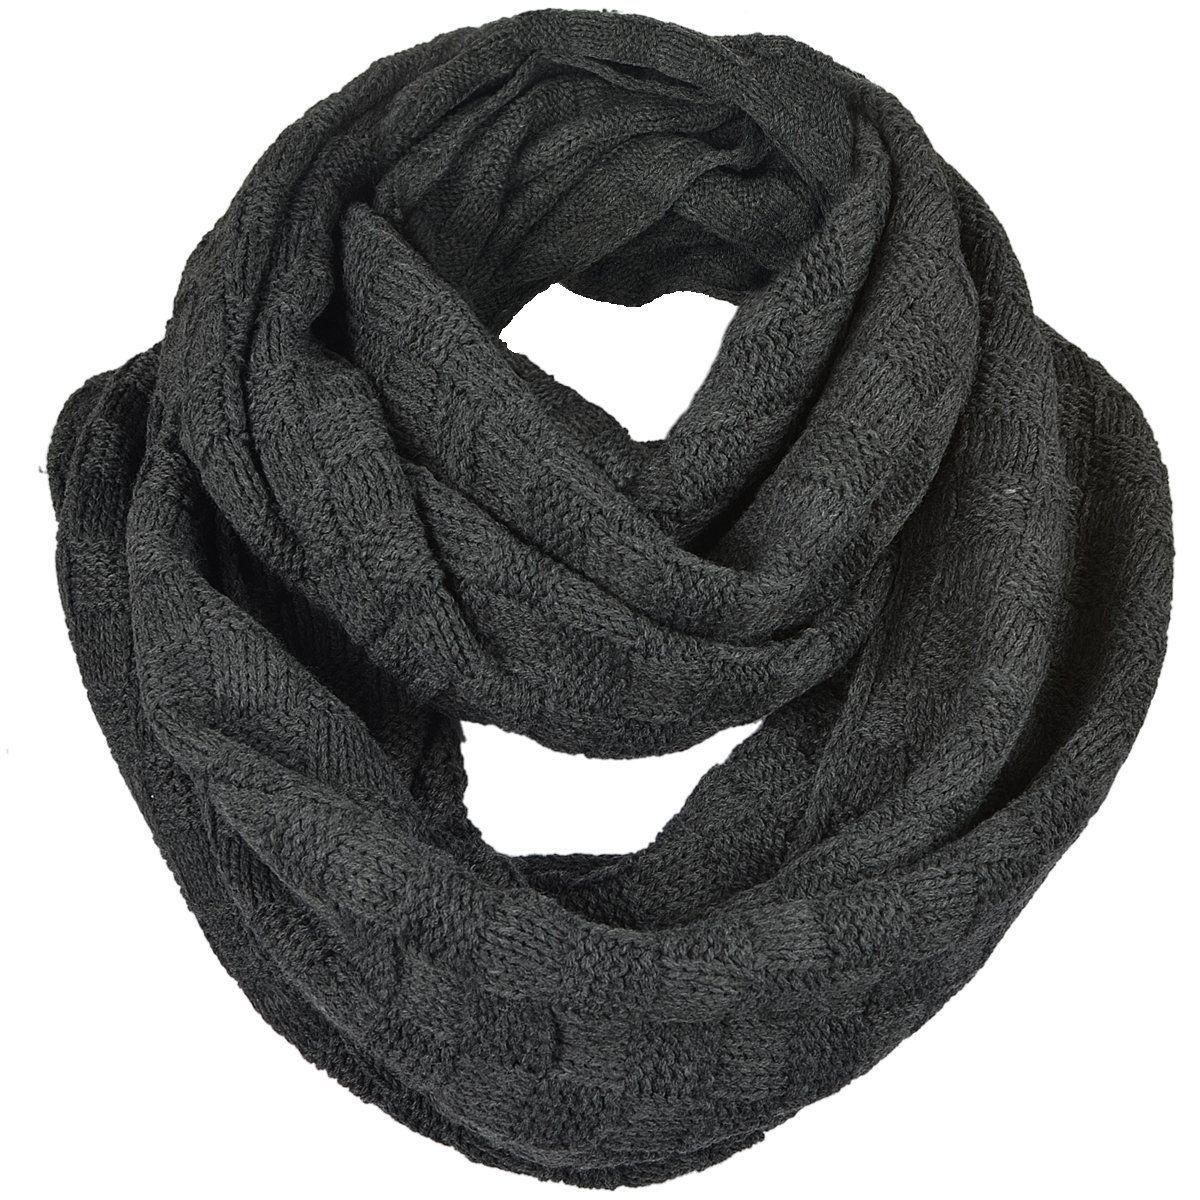 Unisex Soft Knit Winter Infinity Scarf (Multicolor Choose) (Check Style-Dark Grey)